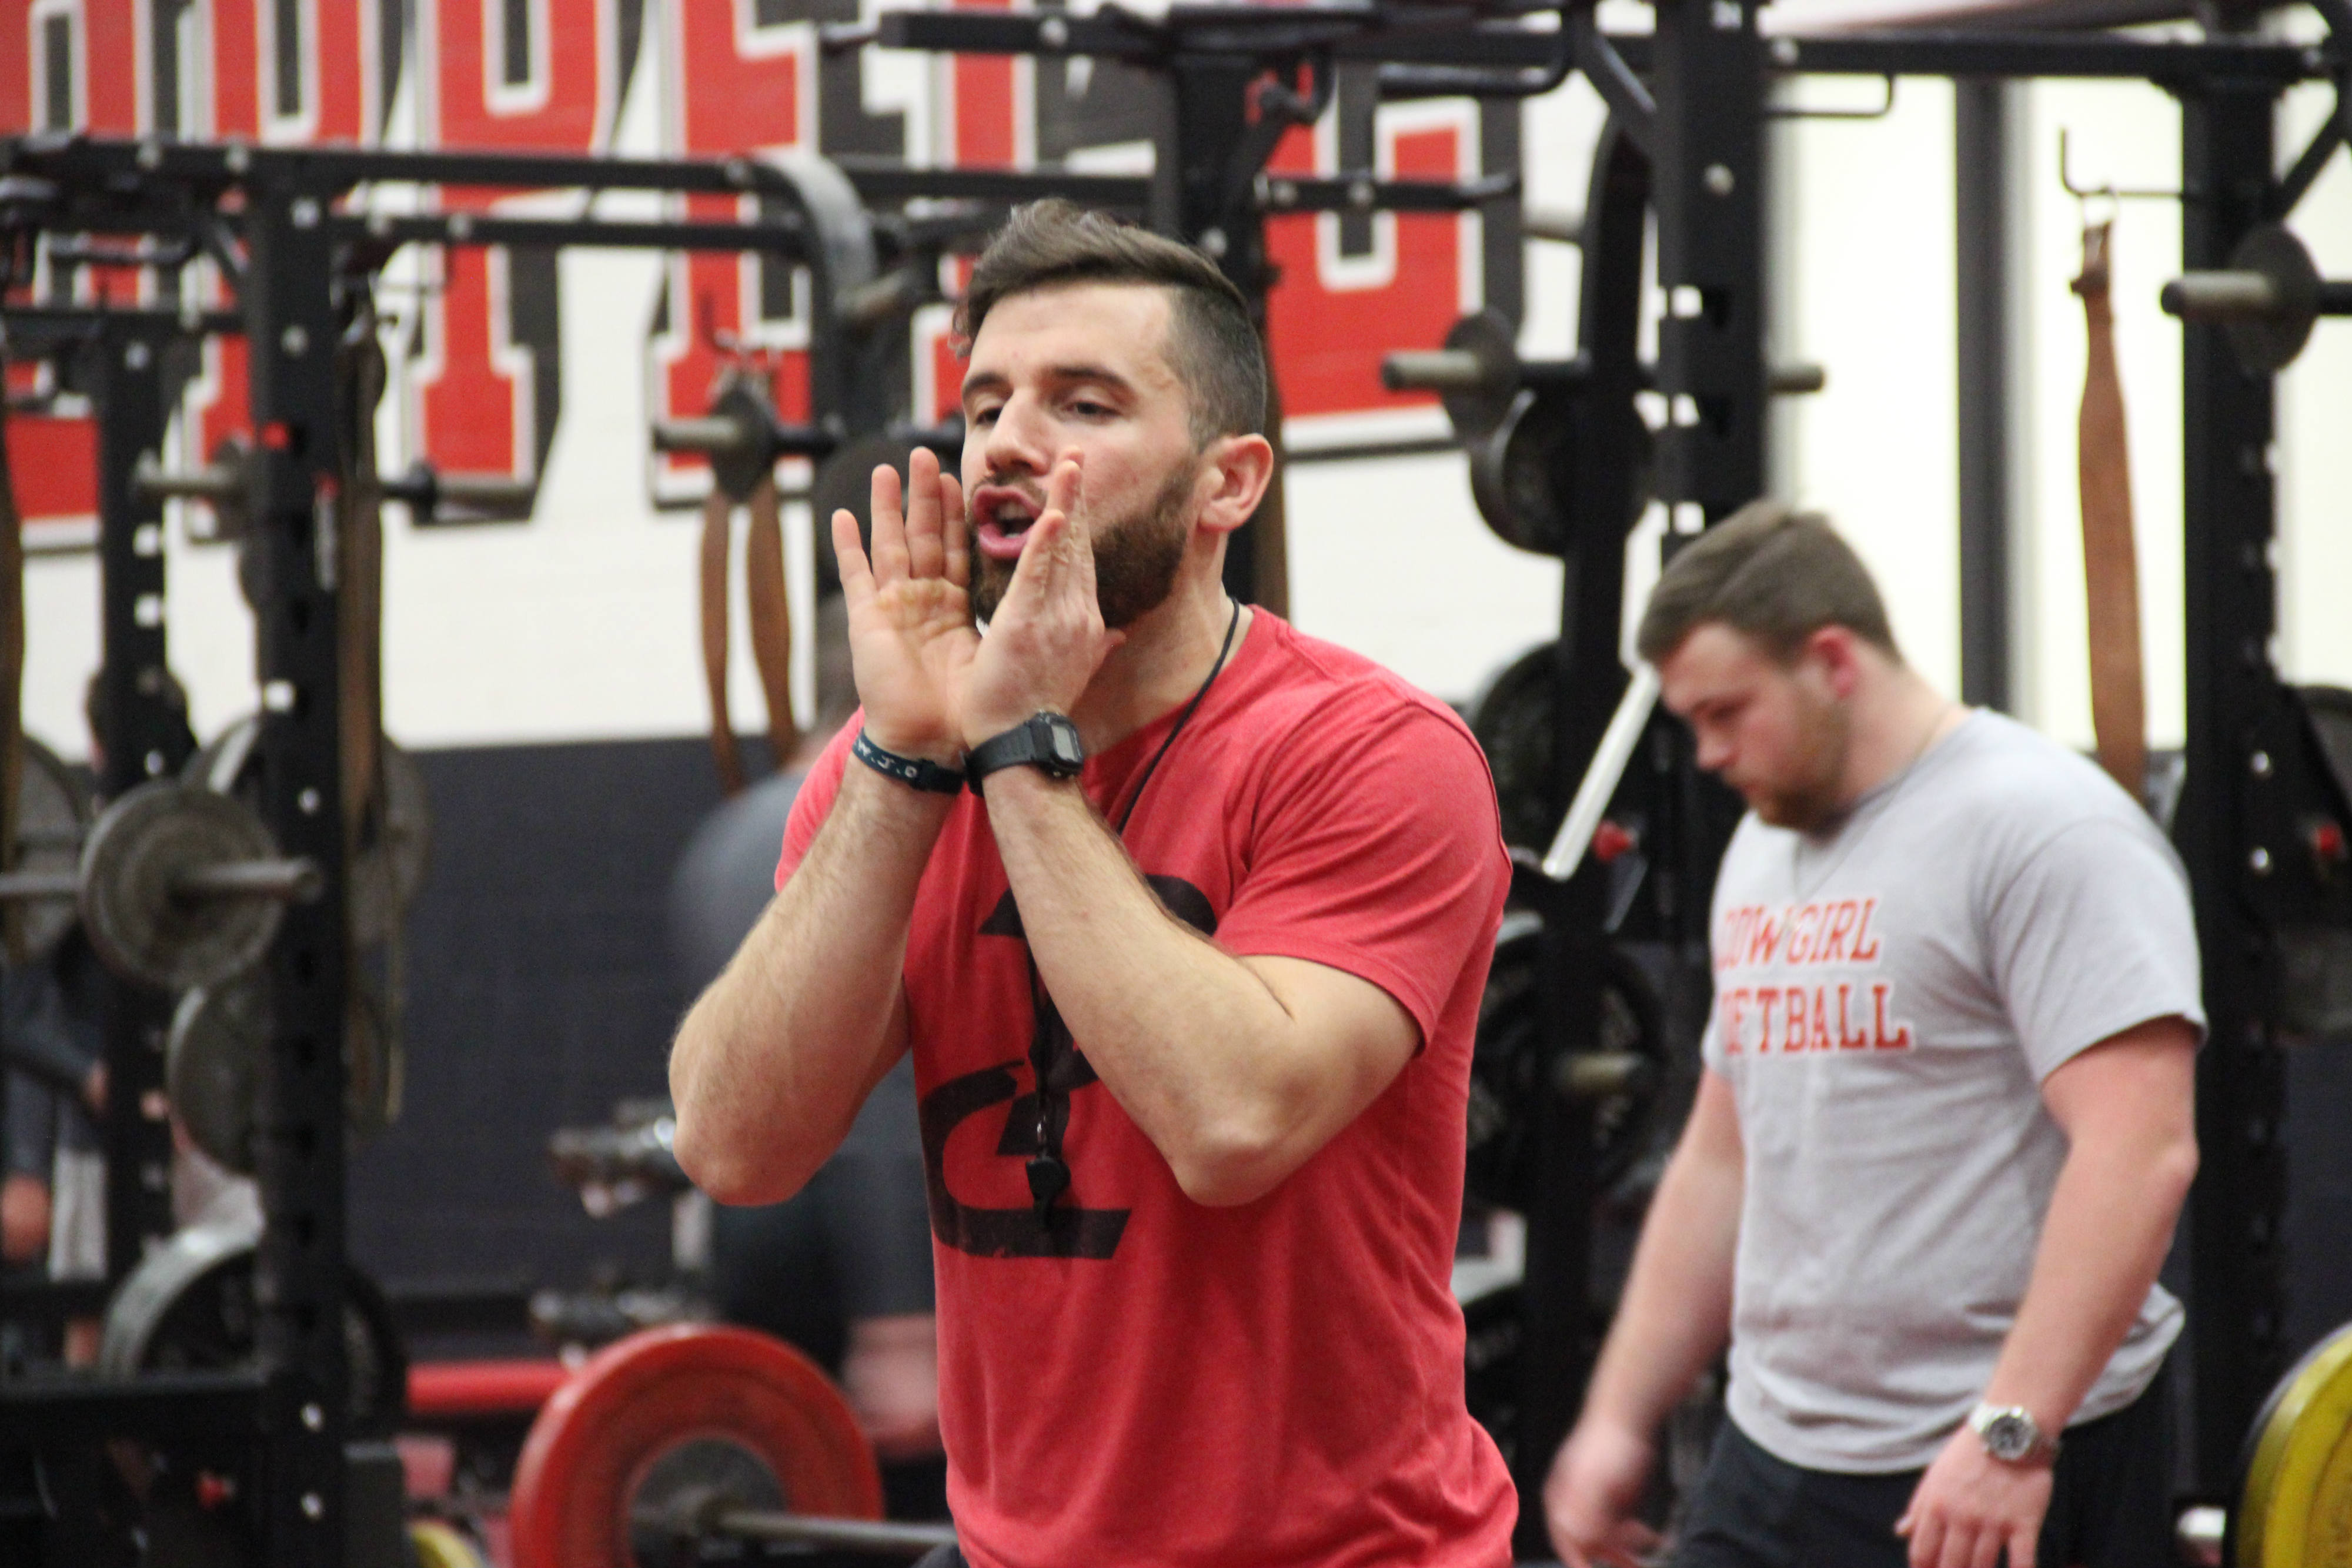 Coppell Performance Course director Stephen Baca motivates the athletes to push on in their workout after school last Thursday in the Coppell High School weight room. Baca has a very motivational personality and hosts workouts before and after school with CHS athletes. Photo by Hannah Tucker.